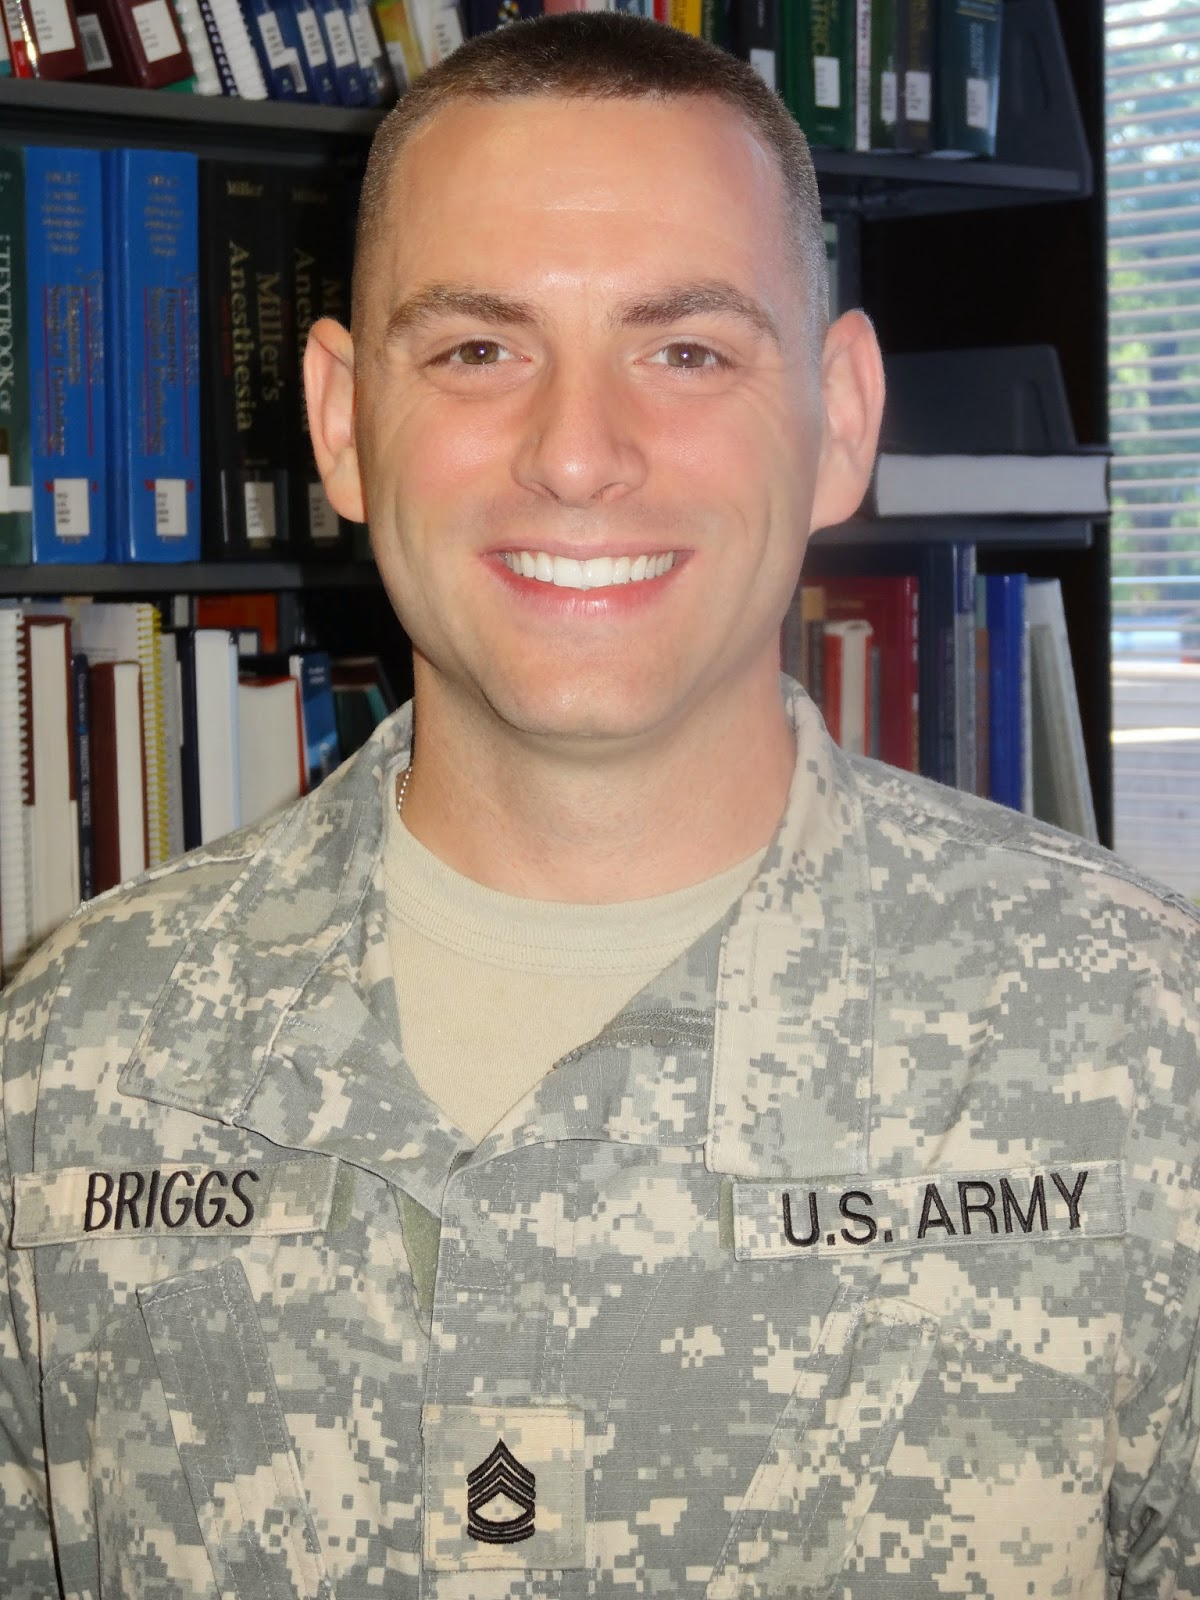 Jerald Briggs in United States Army attire posing for a photo in a library.